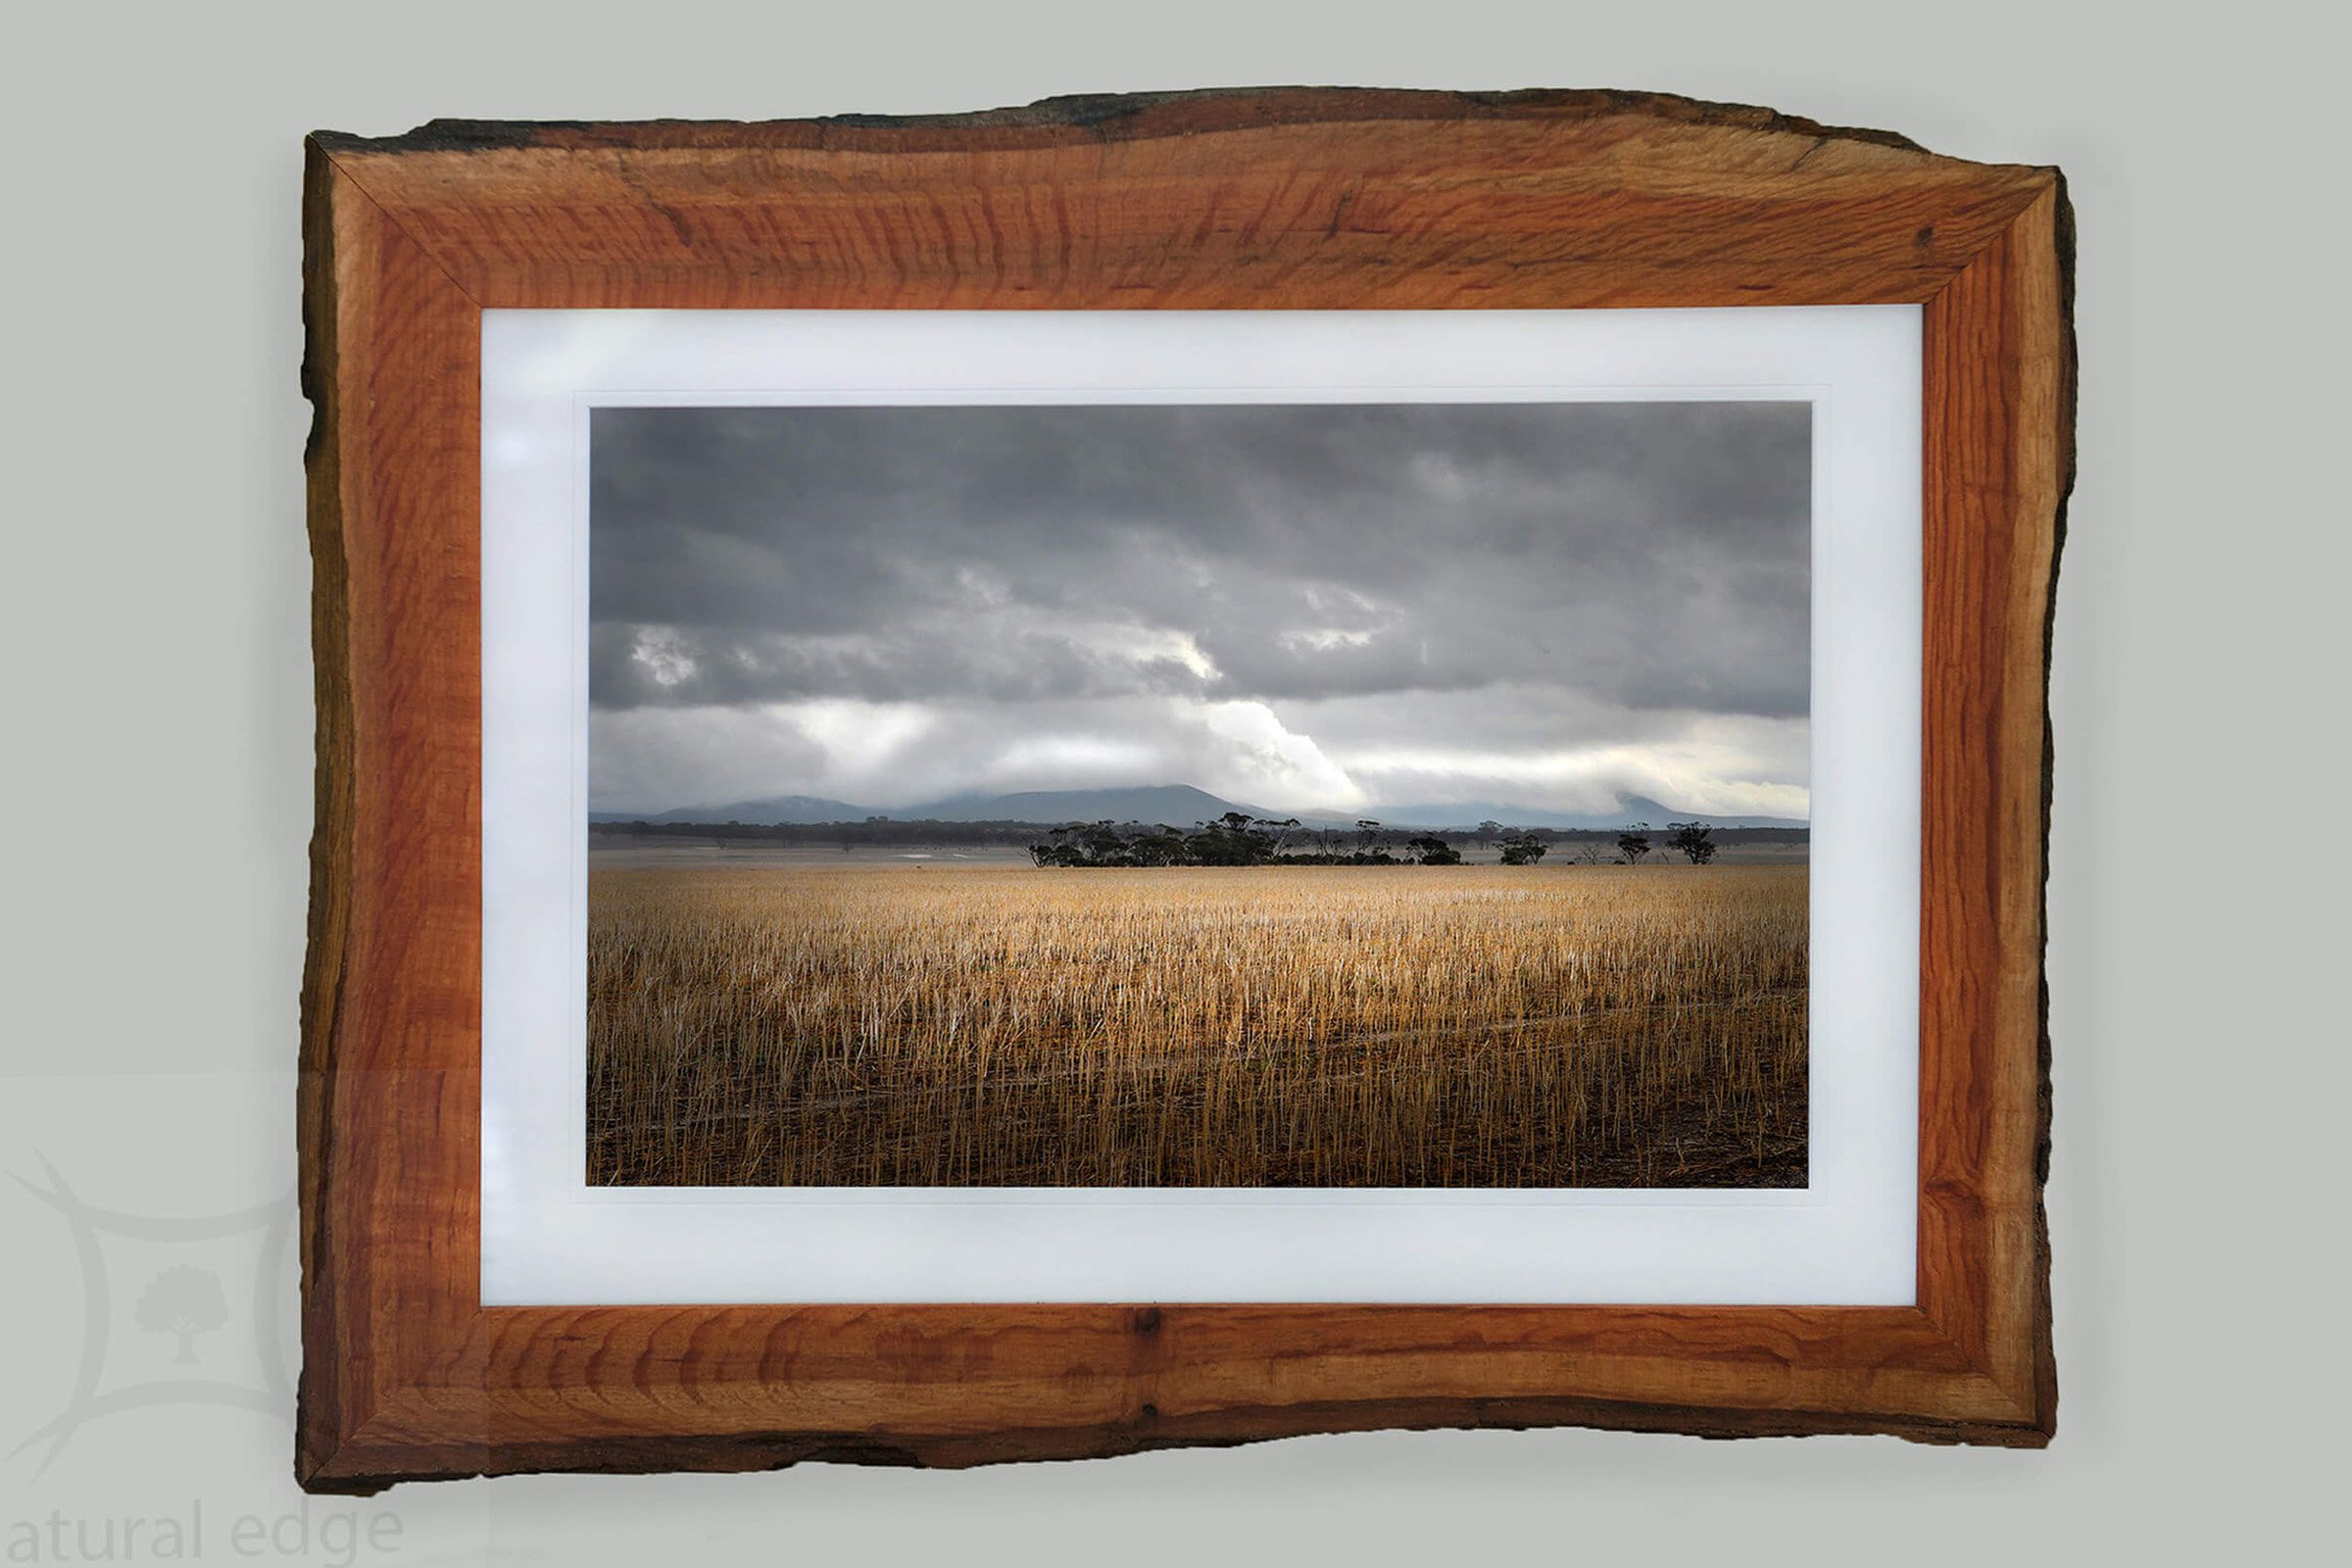 A harvested field of canola with the Stirling Ranges in the background with a dramatic sky framed in WA Sheoak bark edge timber made by Natural Edge Framing and Photography.